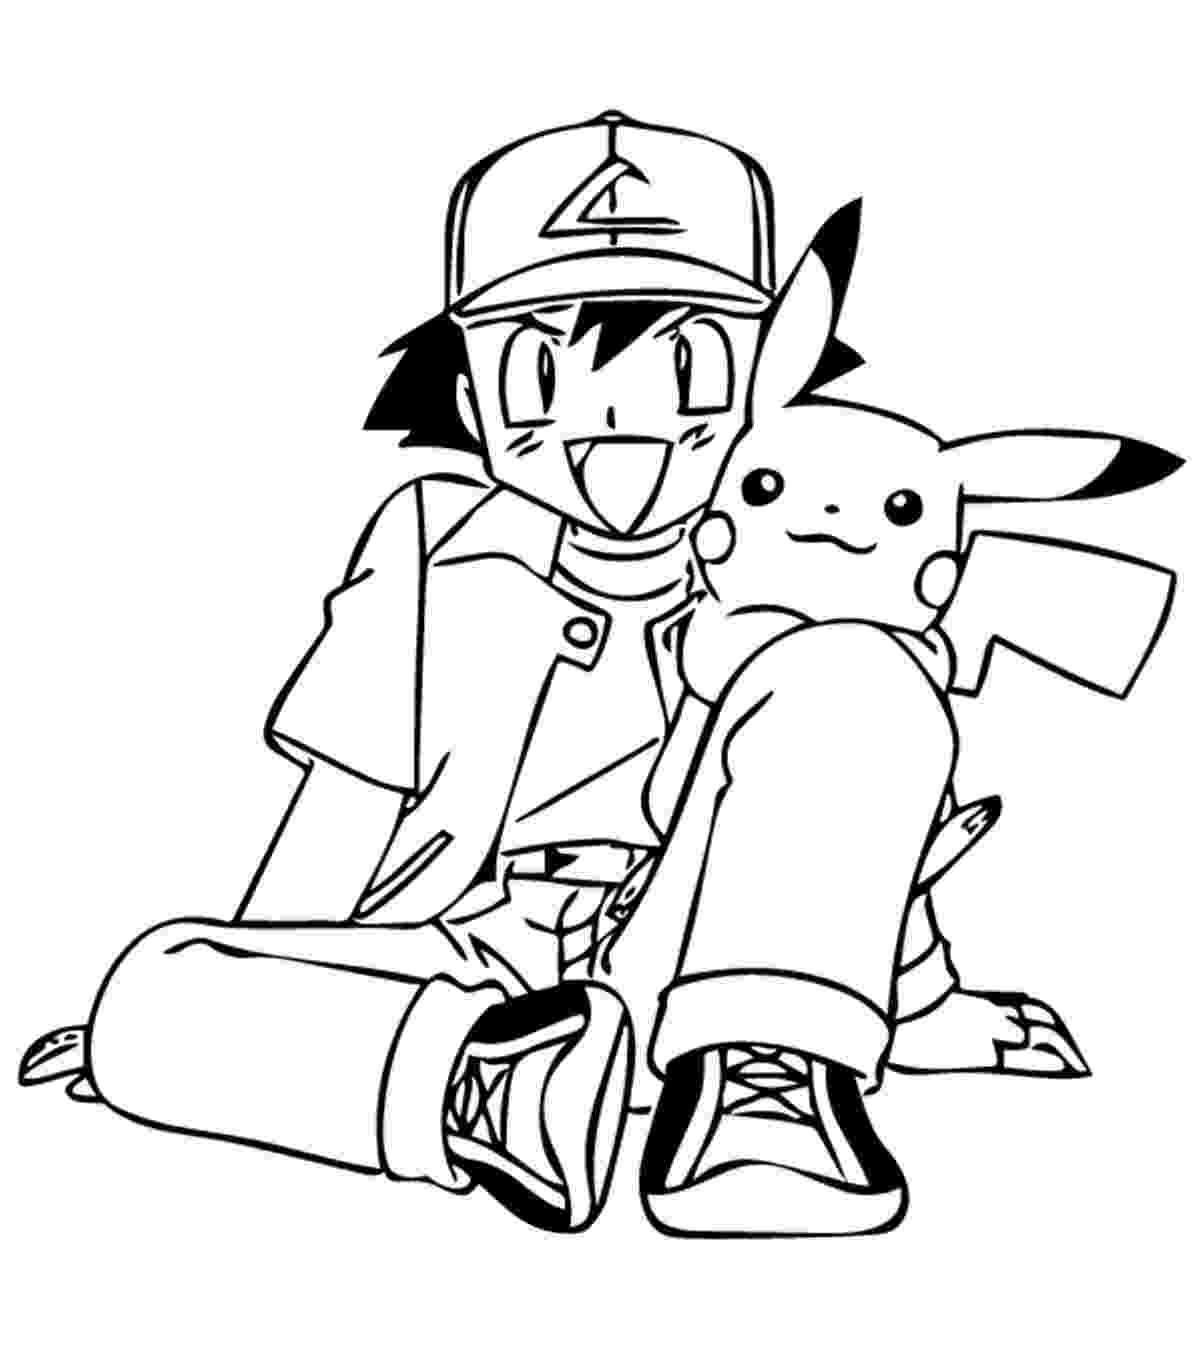 pokemon printable colouring pages people coloring pages momjunction pokemon colouring printable pages